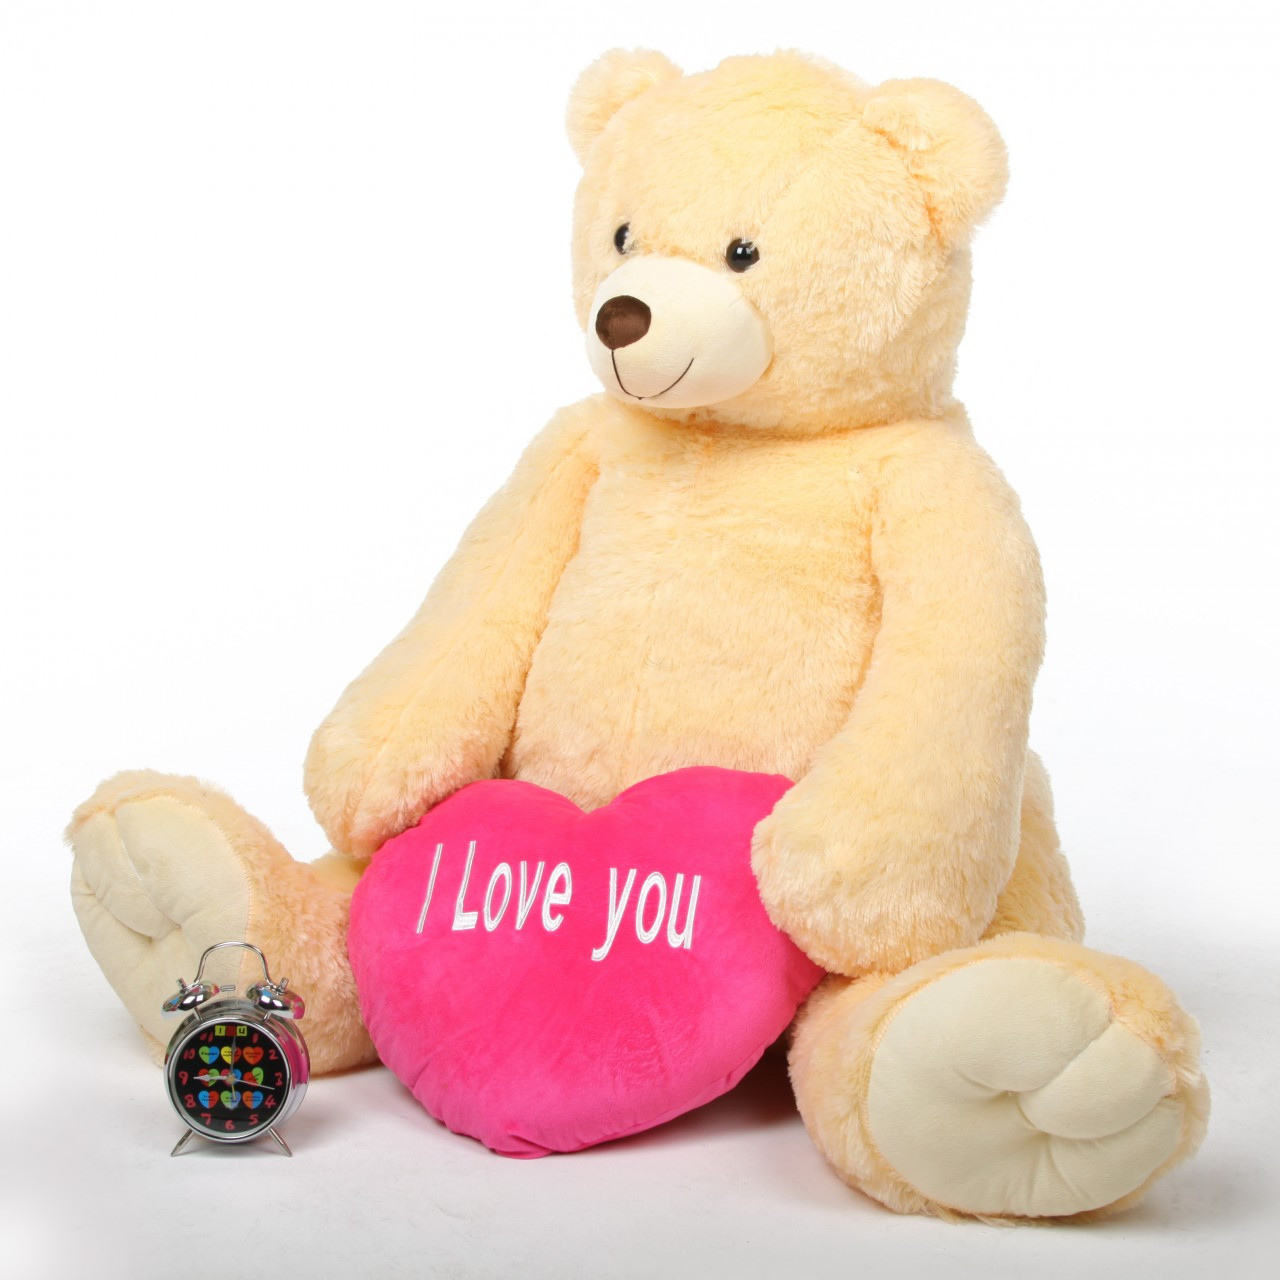 Cream Teddy Bear 52in Jumbo Tiny Heart Tubs I LOVE YOU Hot Pink Heart